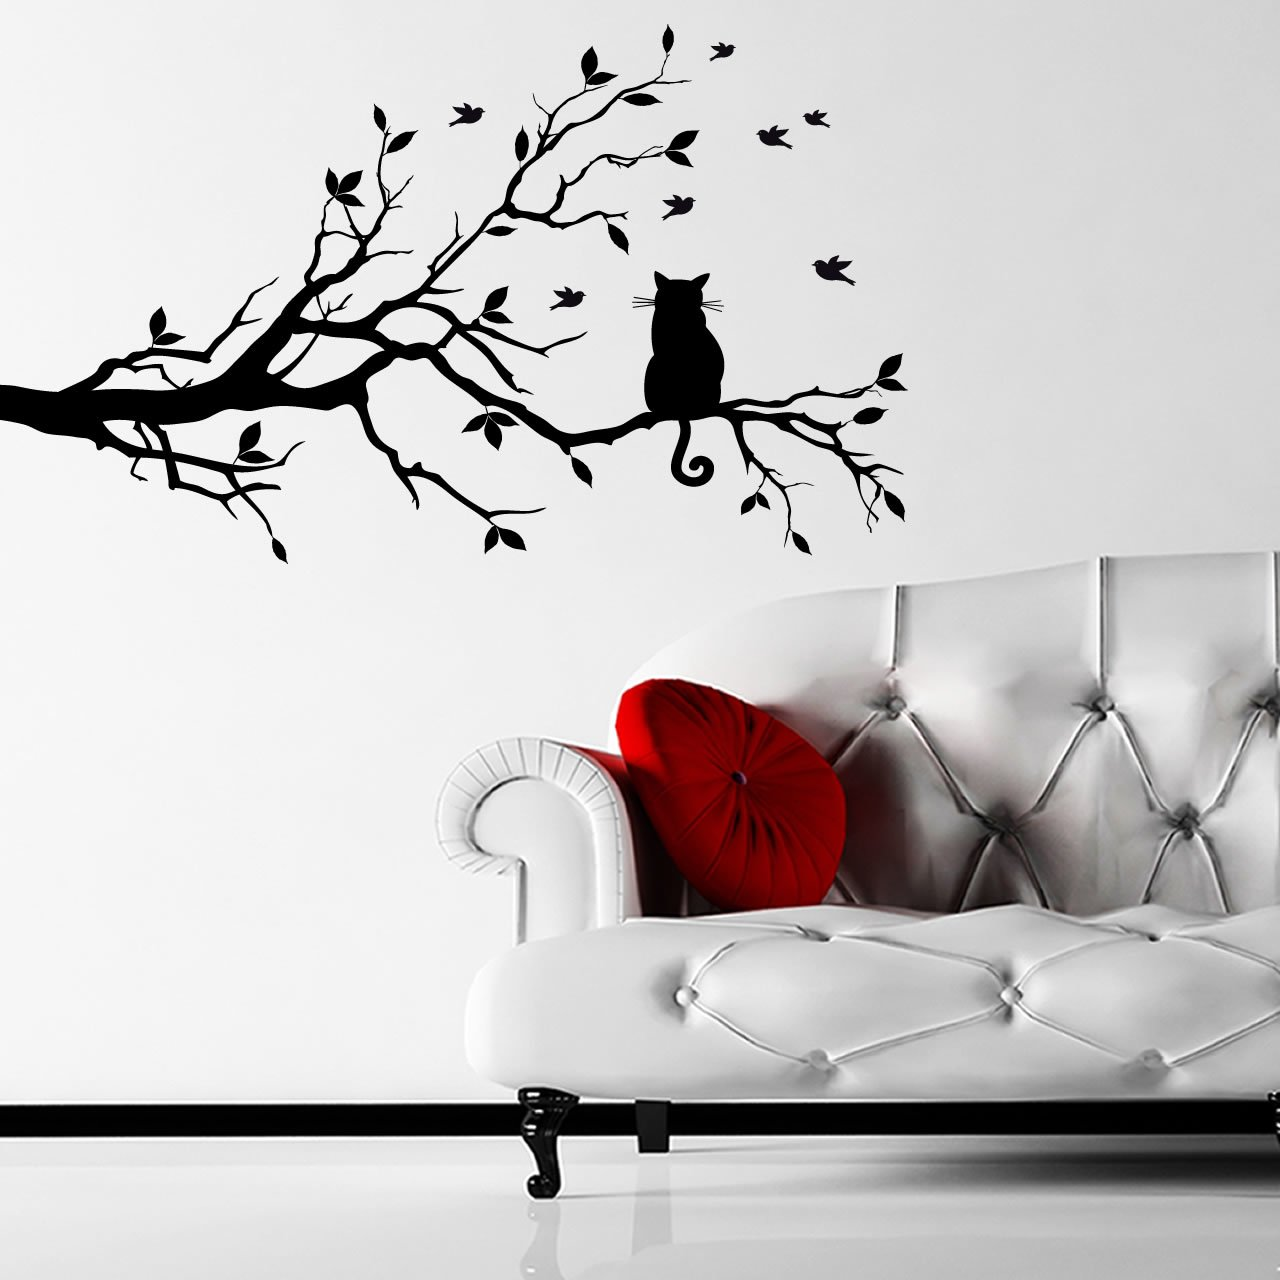 Cat on a branch animal wall sticker world of wall stickers cat on a branch animal wall sticker decal a amipublicfo Gallery